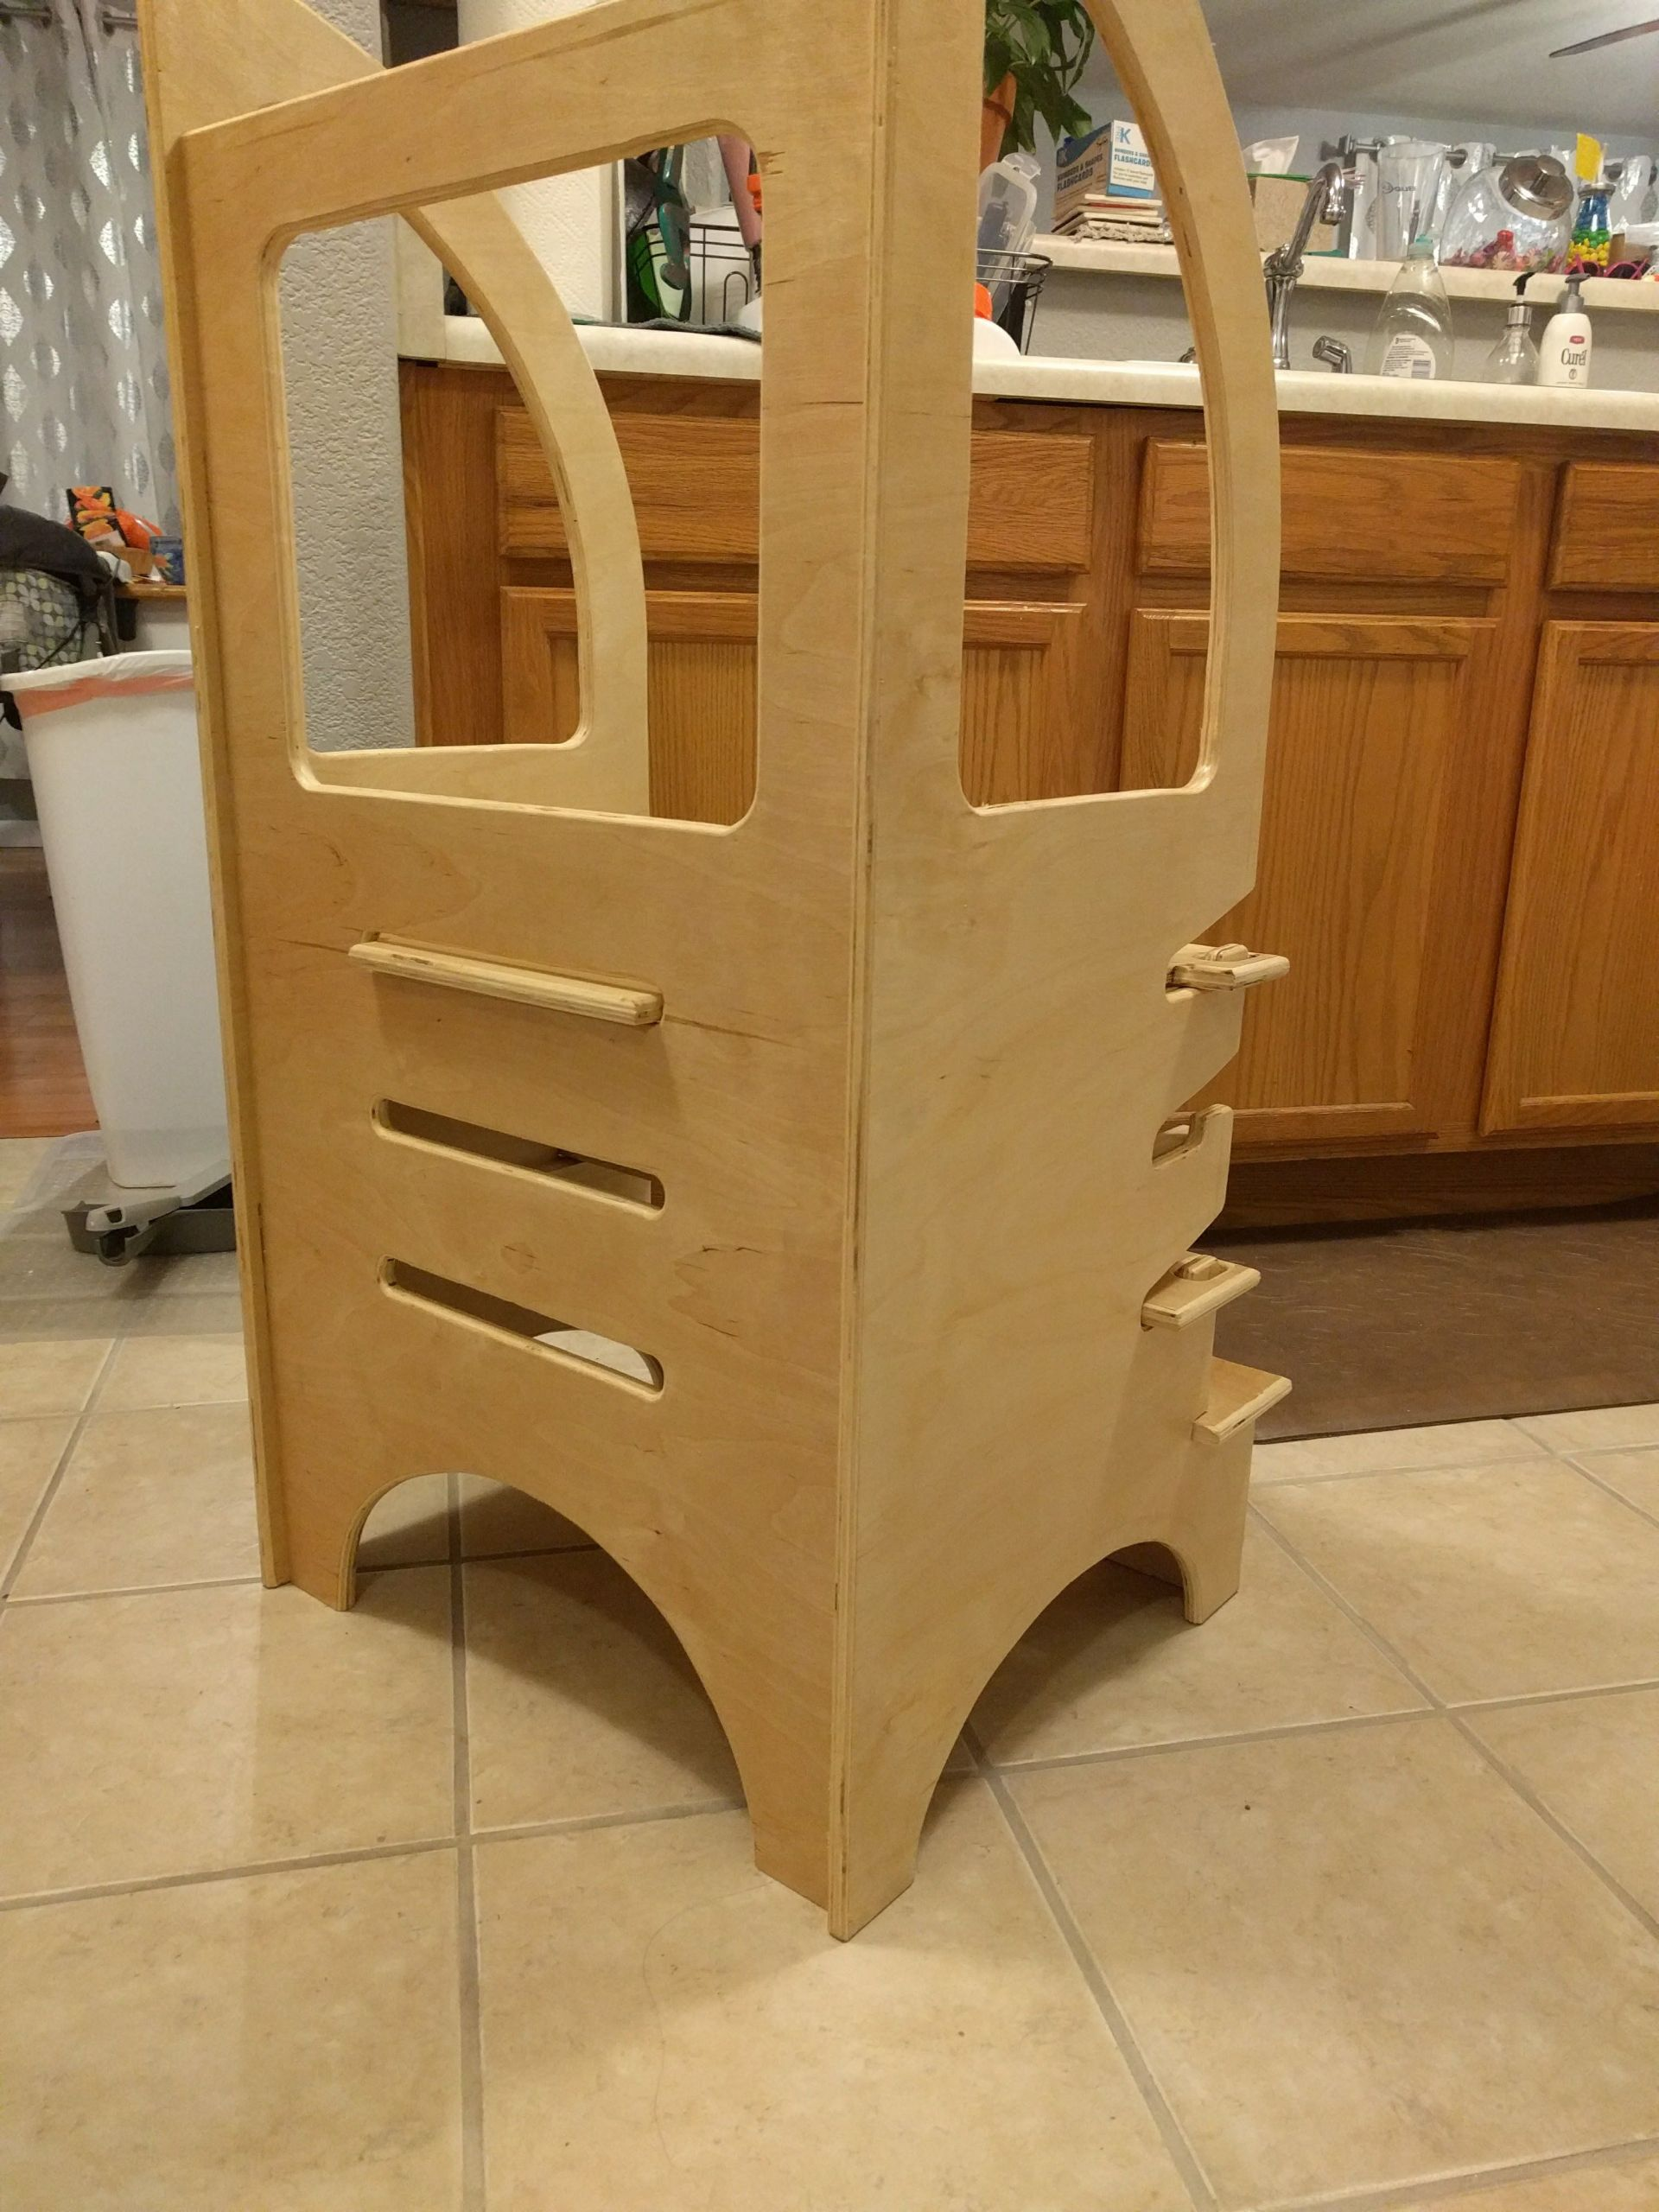 DIY Toddler Step Stool  Adjustable height Toddler Step Stool made from plywood